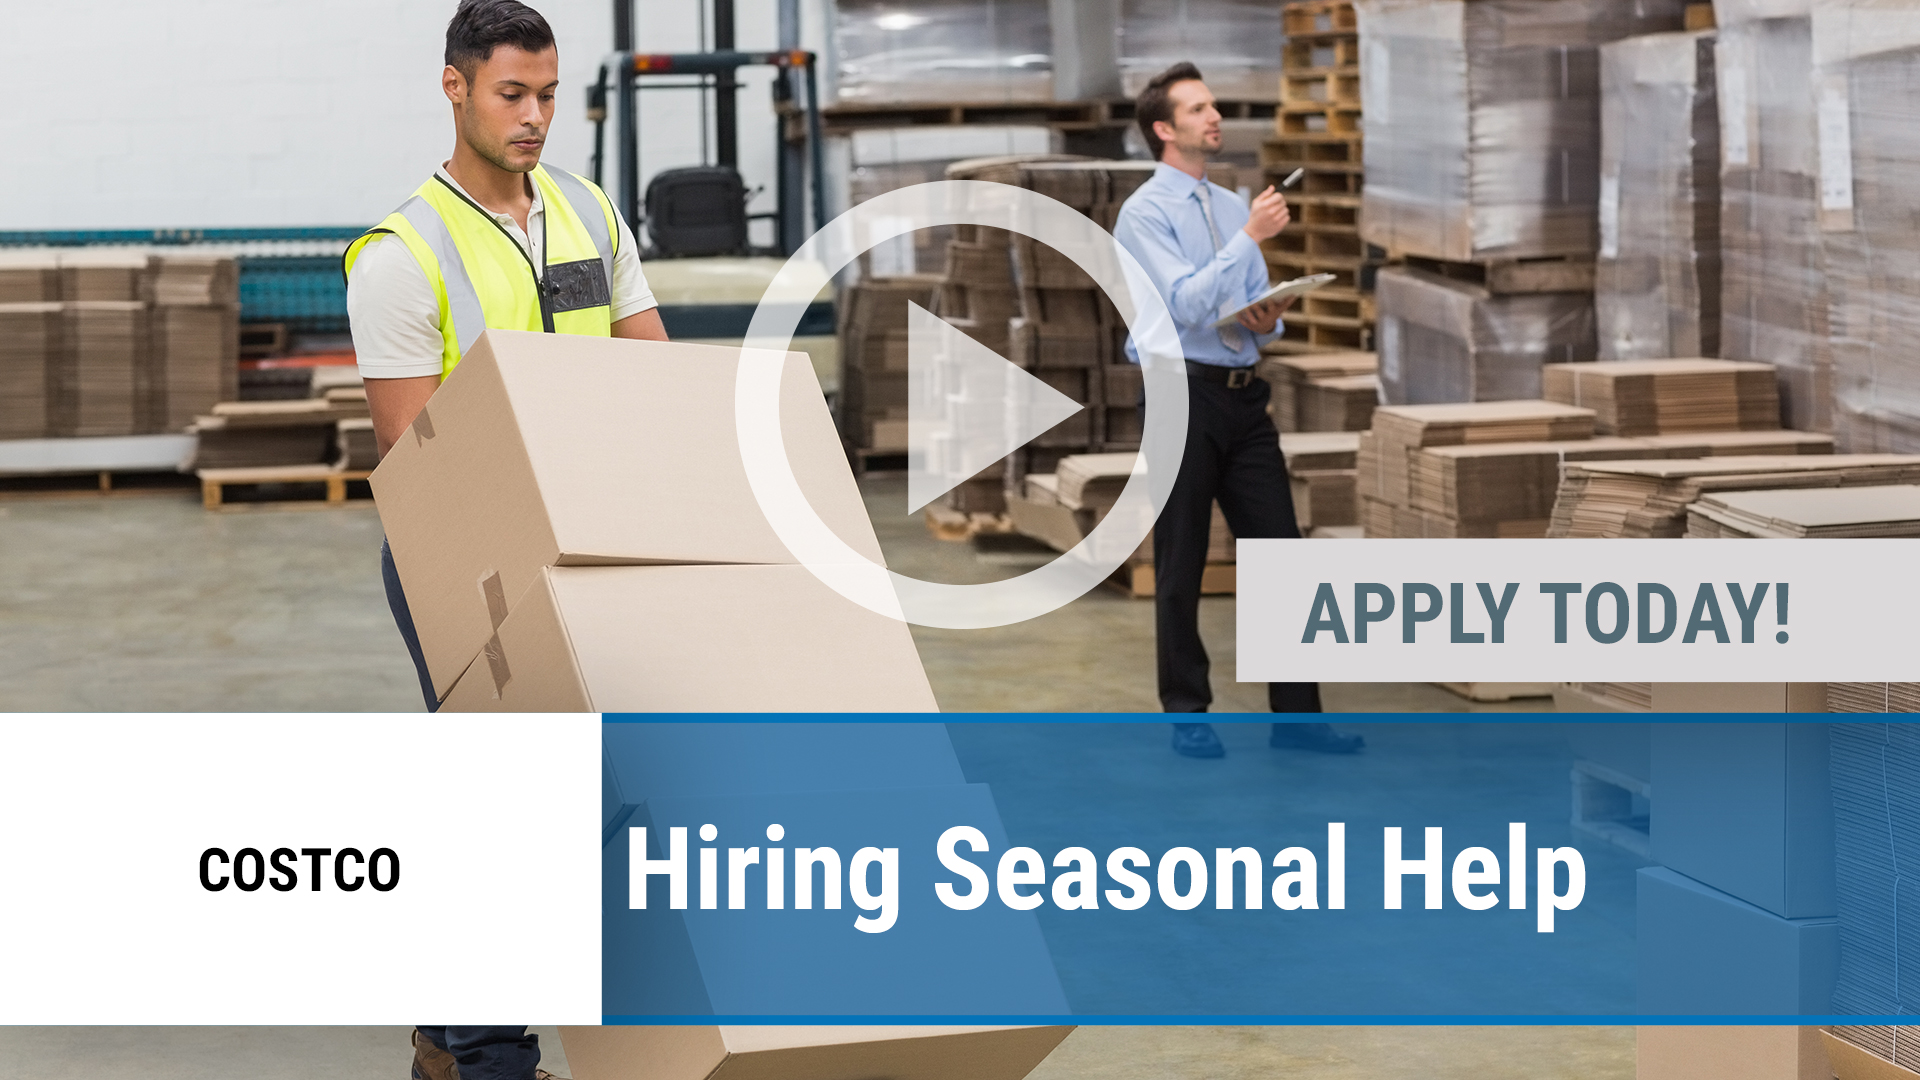 Watch our careers video for available job opening Hiring Seasonal Help in Monrovia, MD